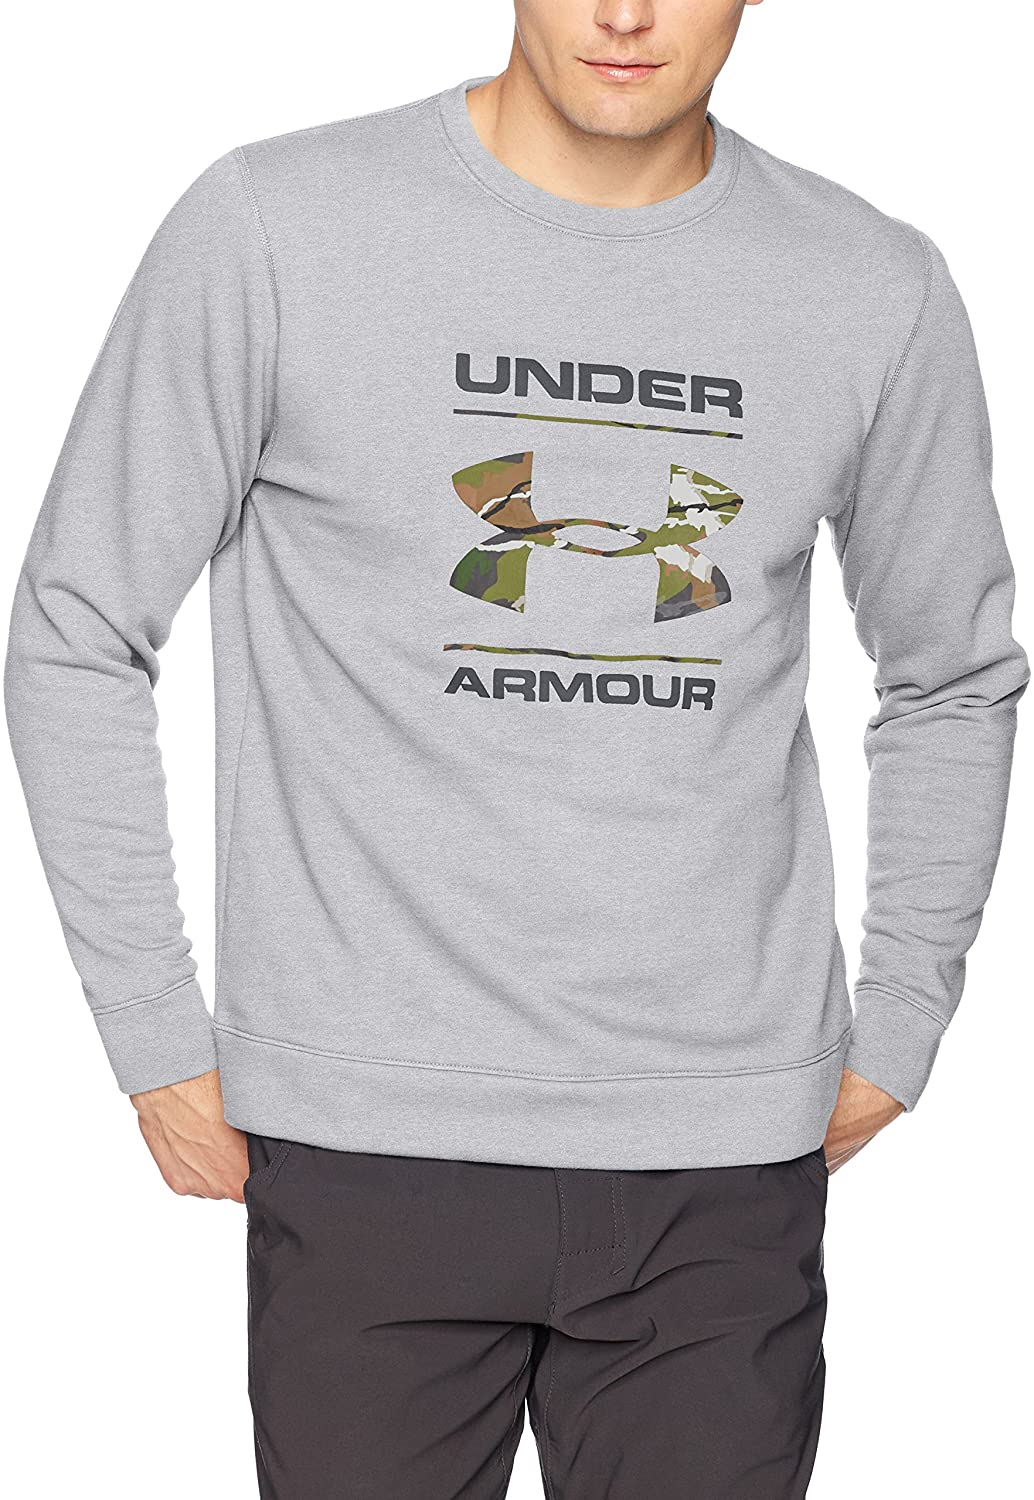 Men's Under Armour Grey / Camo Fill Threadborne Crewneck, 1297252 025